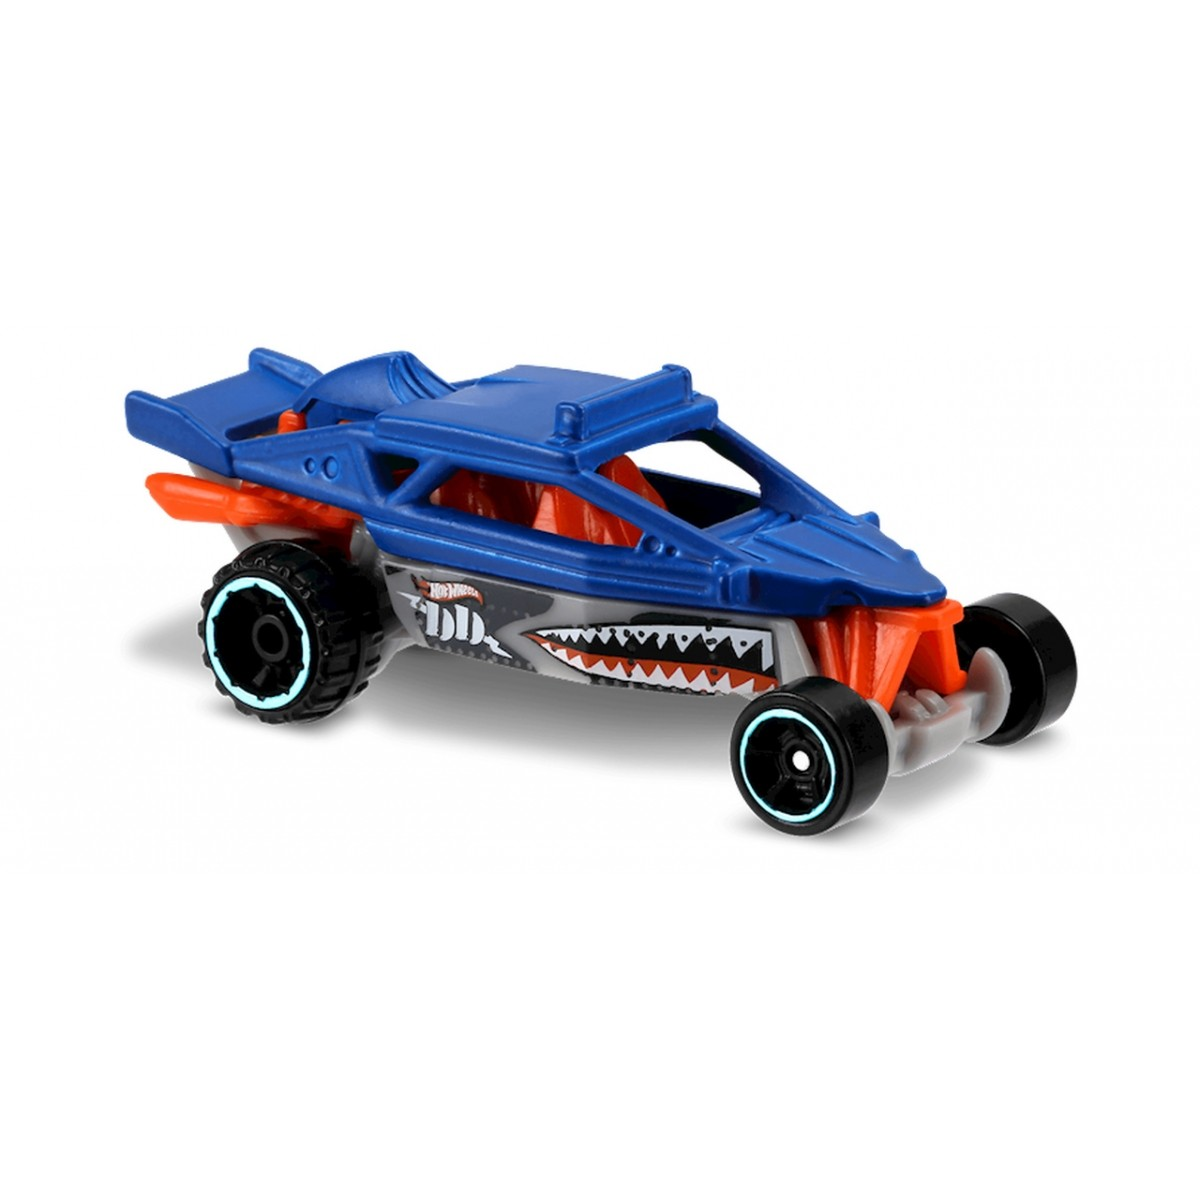 Carrinho Hot Wheels: Dune It Up Azul